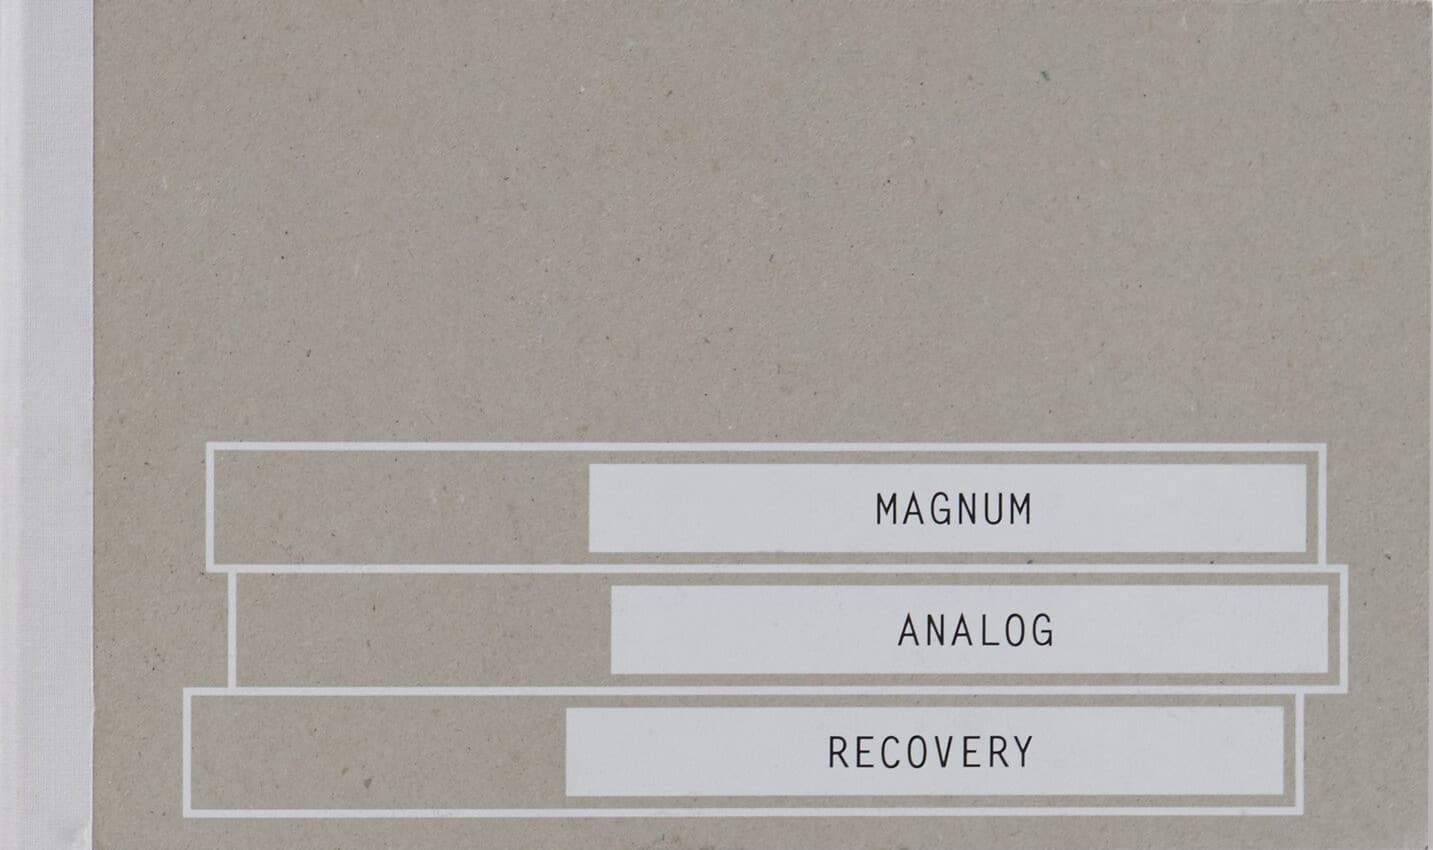 MAGNUM ANALOG RECOVERY